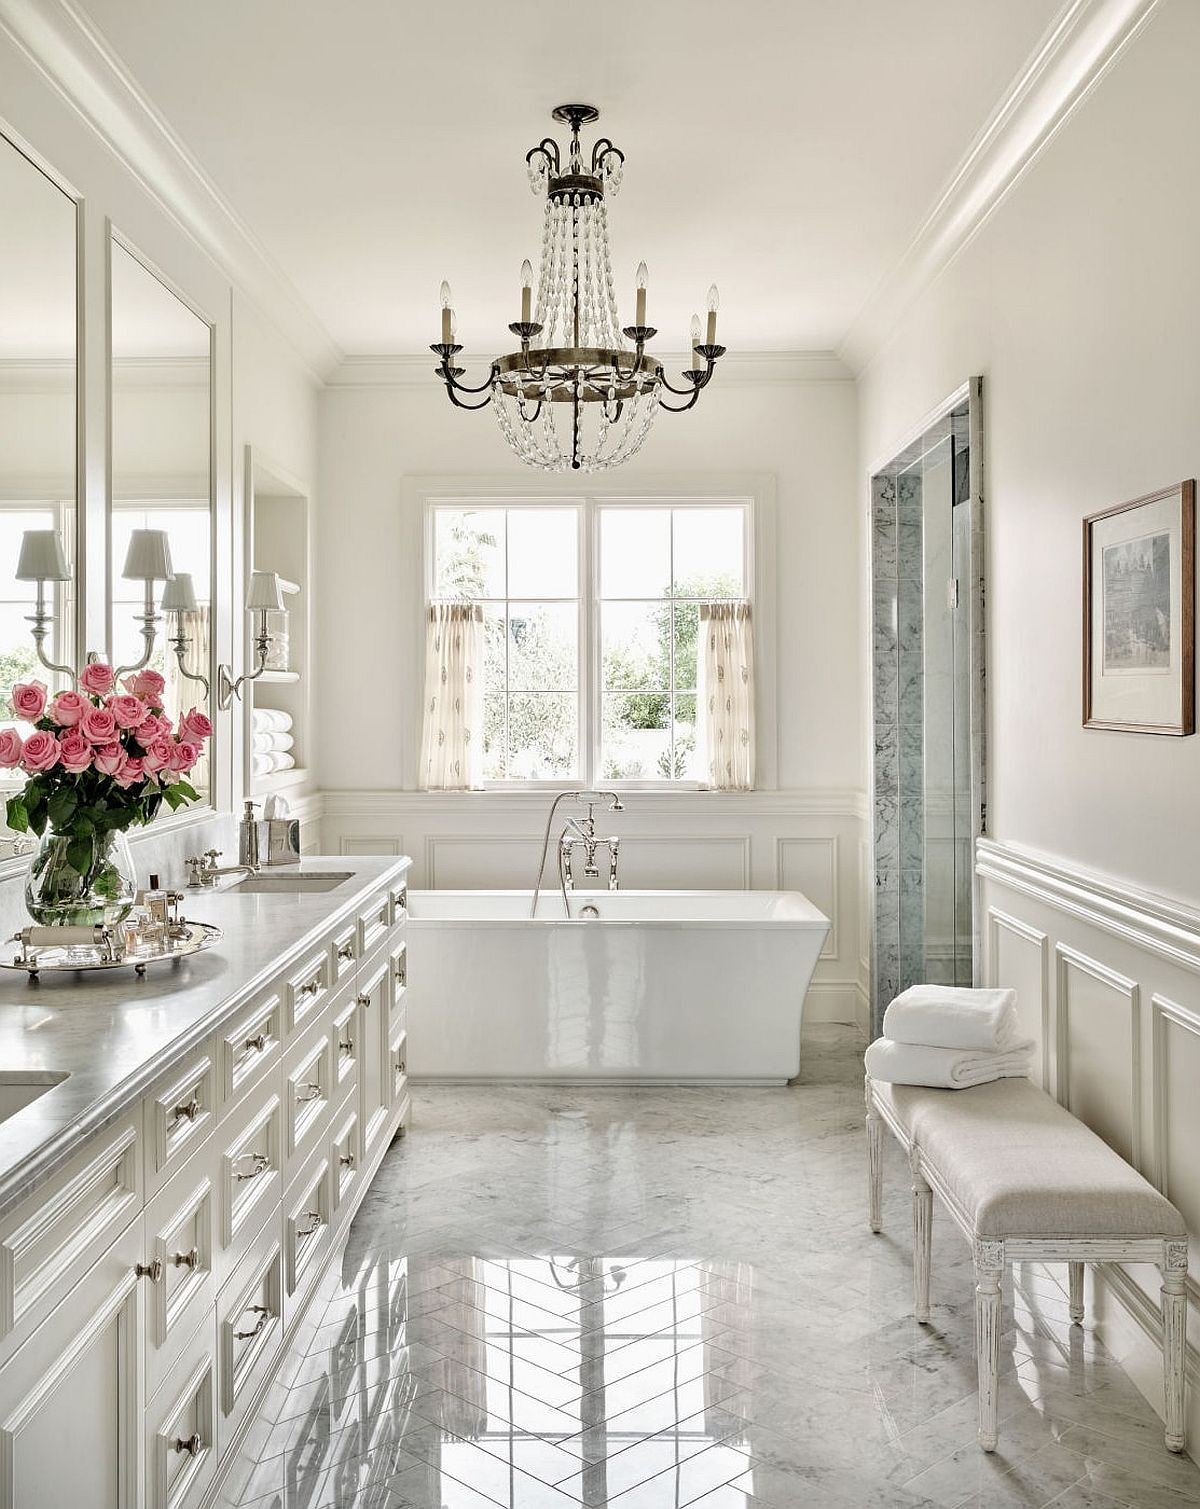 Classic bathroom in white with a beautiful black chandelier and a standalone white bathtub